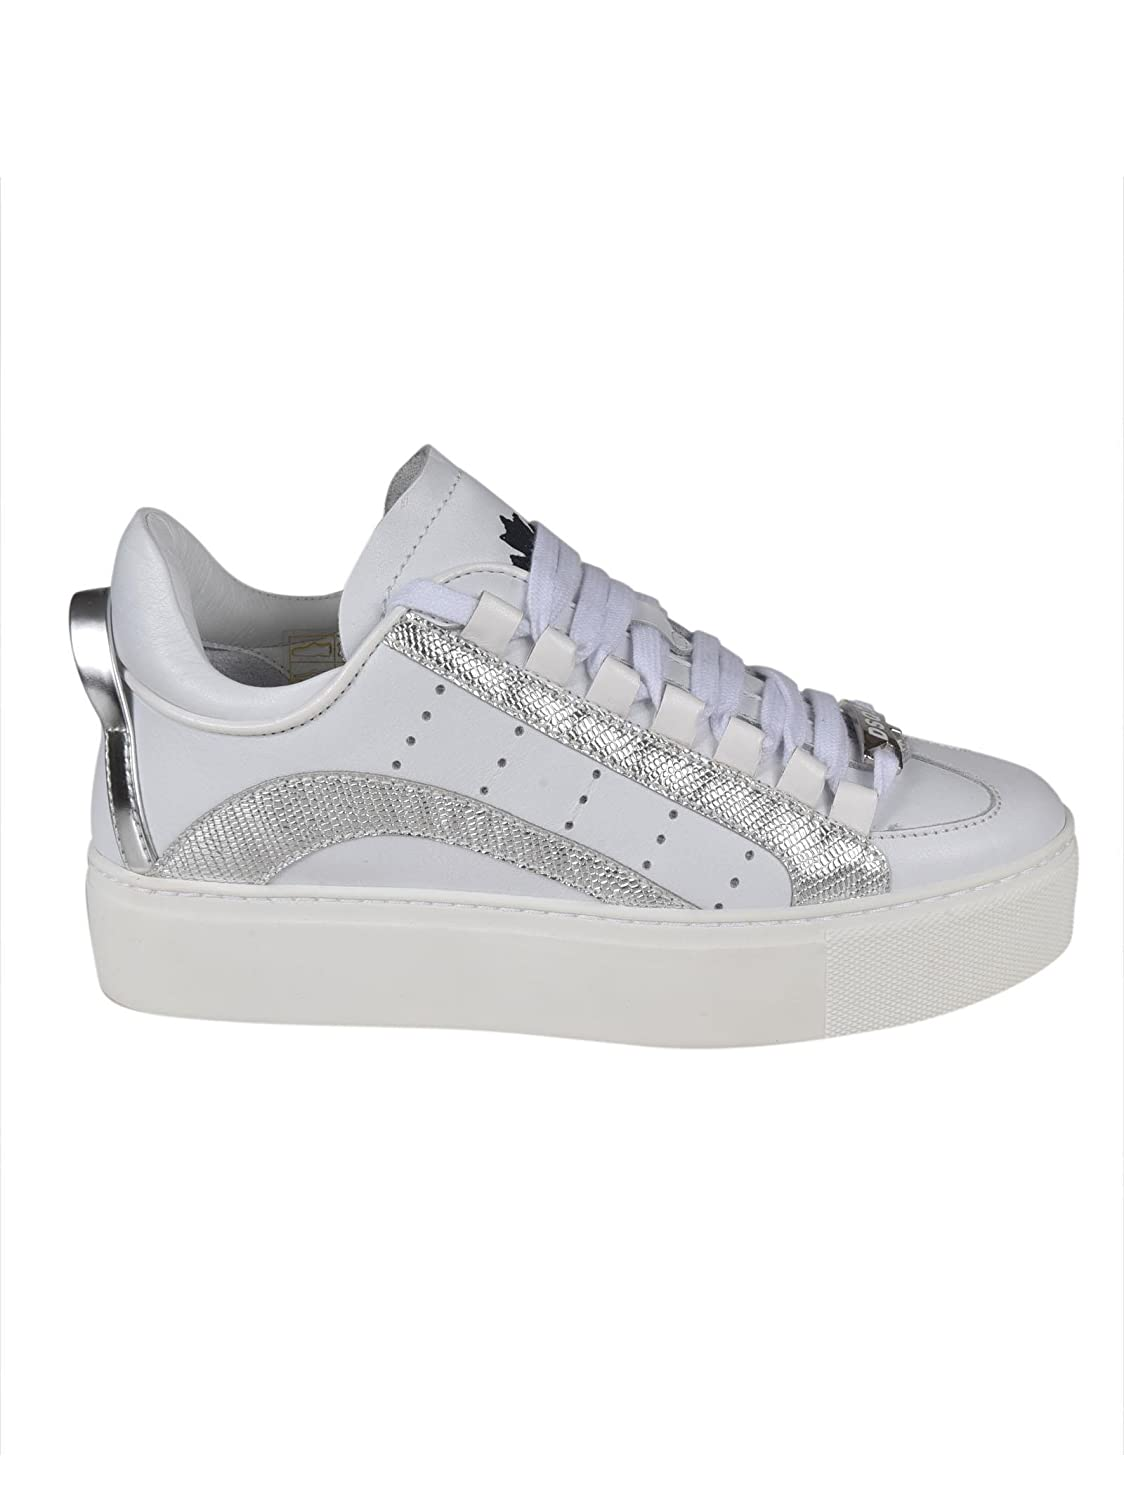 Dsquared2 Sneaker 551 Bianche SNW000310650001M241 Bianco Donna 40   Amazon.fr  Chaussures et Sacs 5e17466df2a9